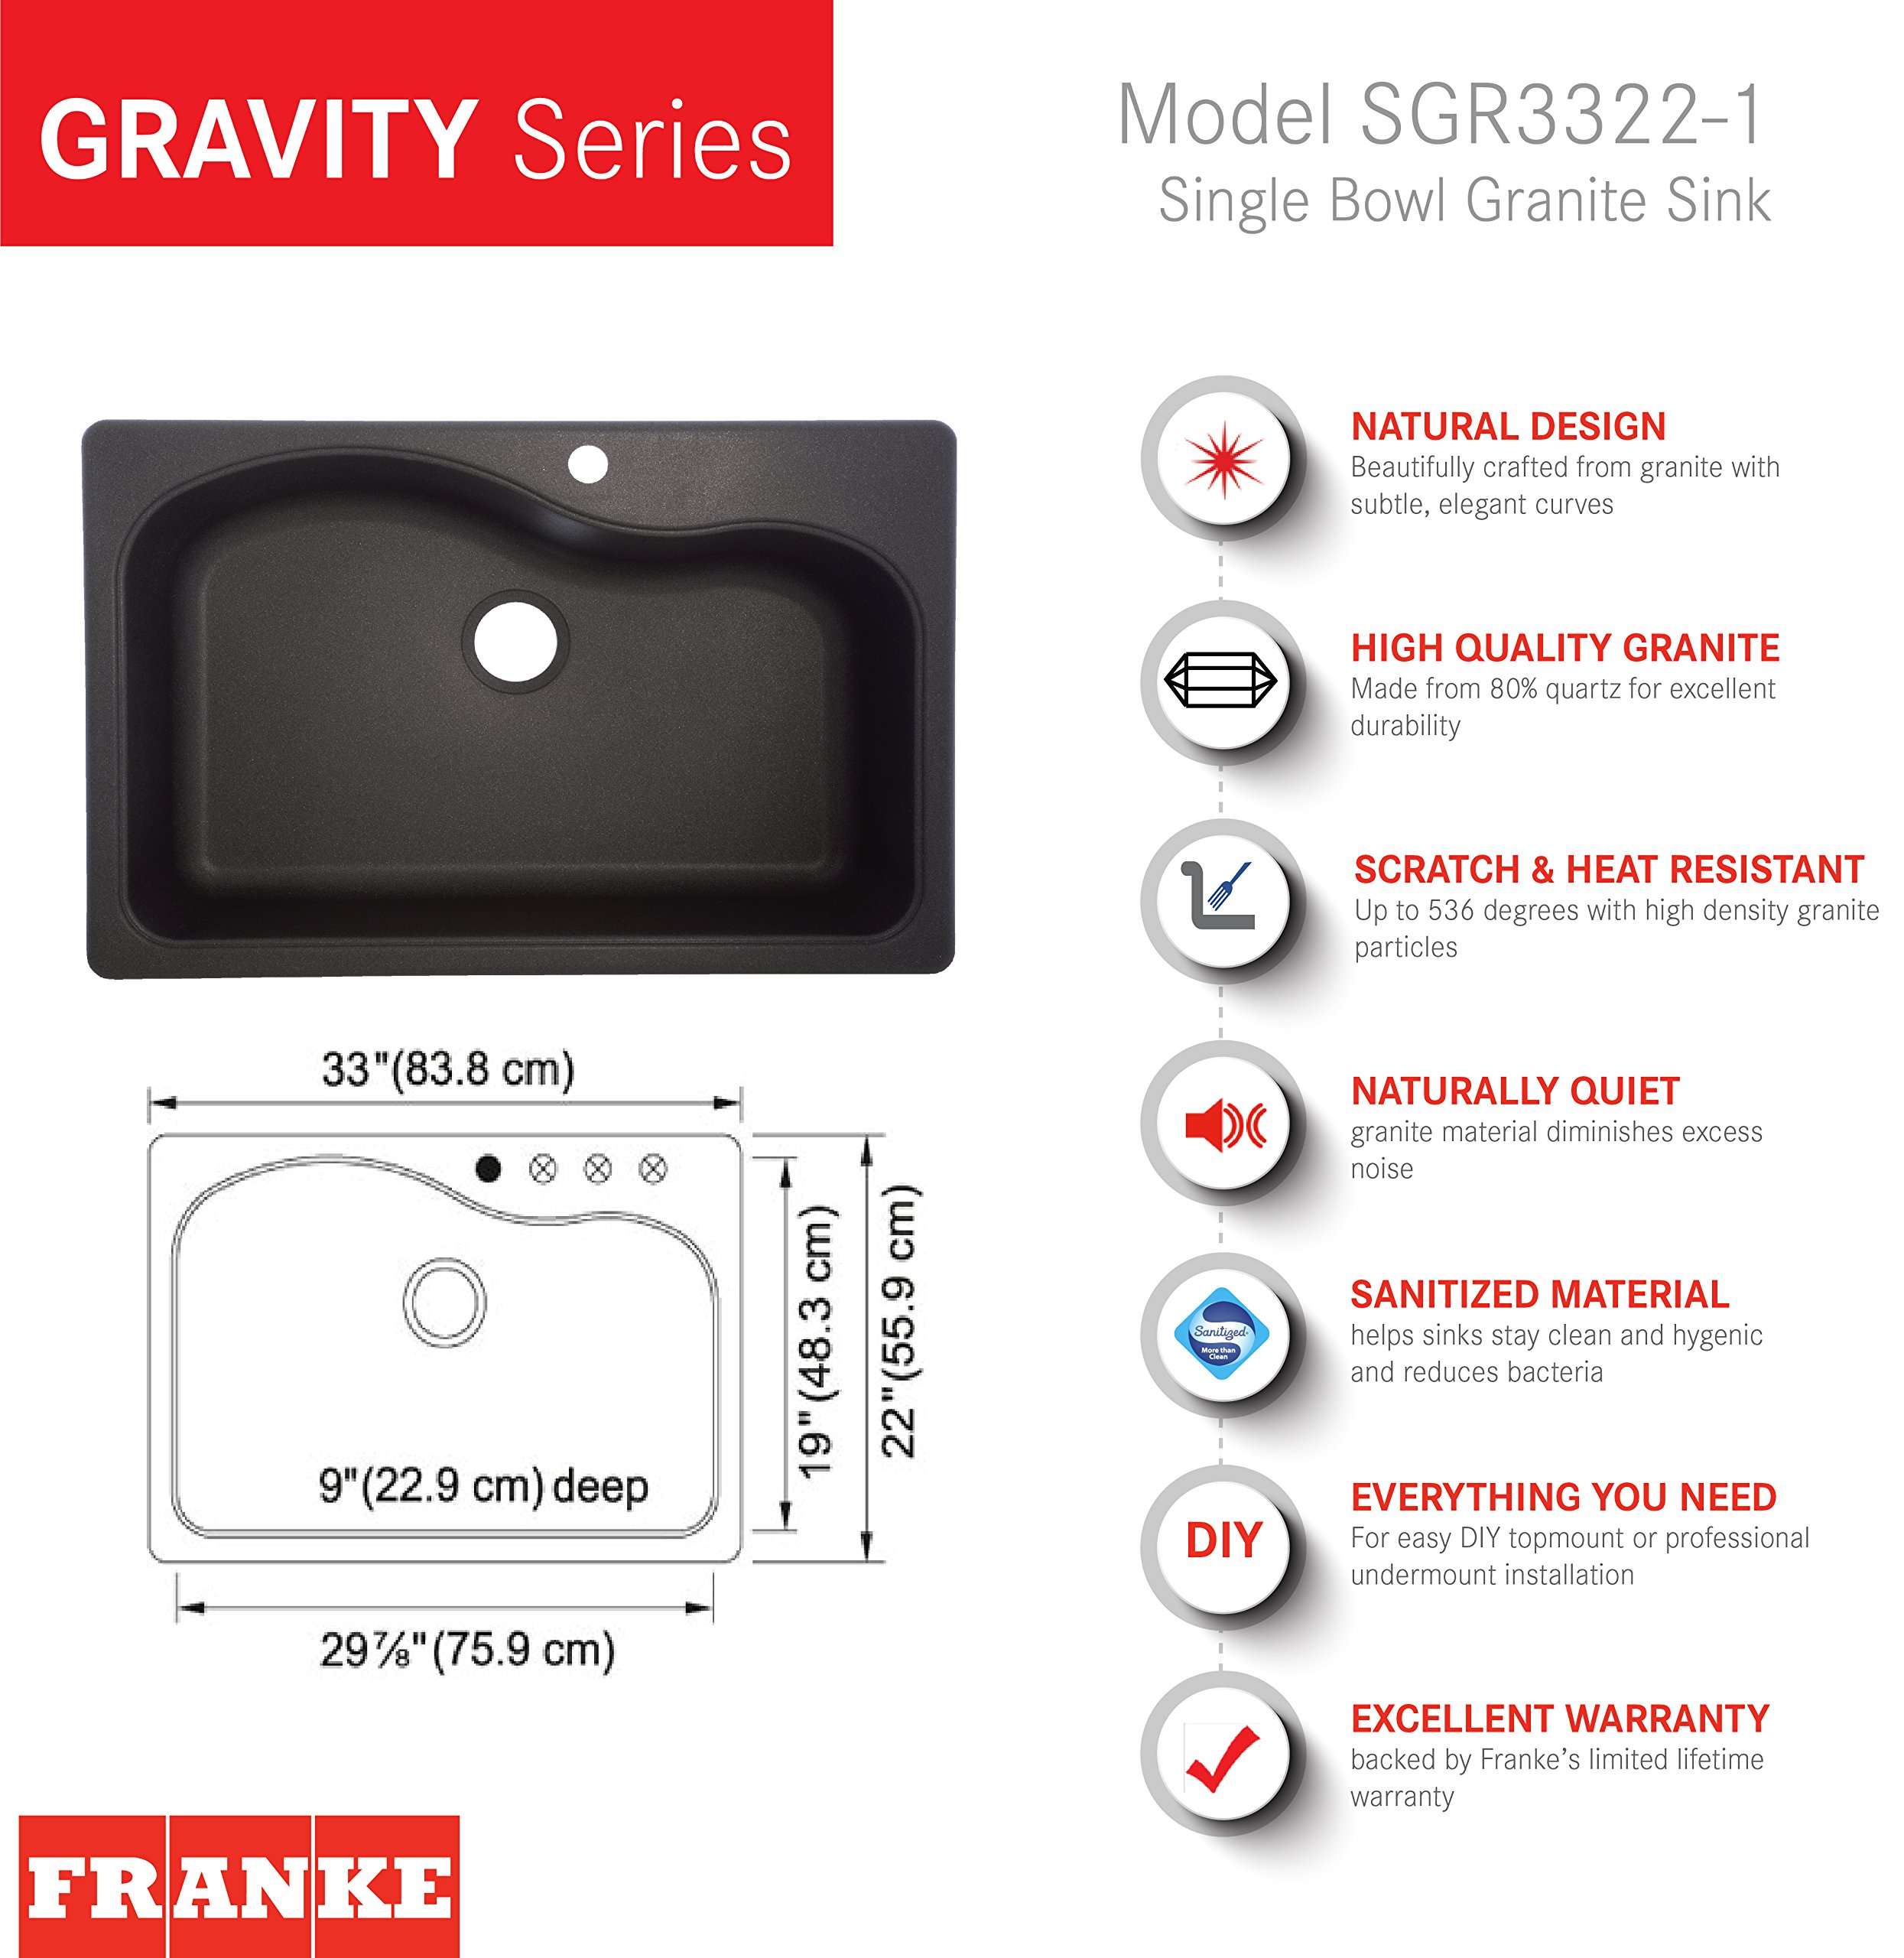 Franke Gravity 33-Inch Wide x 9-Inch Deep Dual Mount Granite Single Bowl Kitchen Sink in Graphite, SGR3322-1